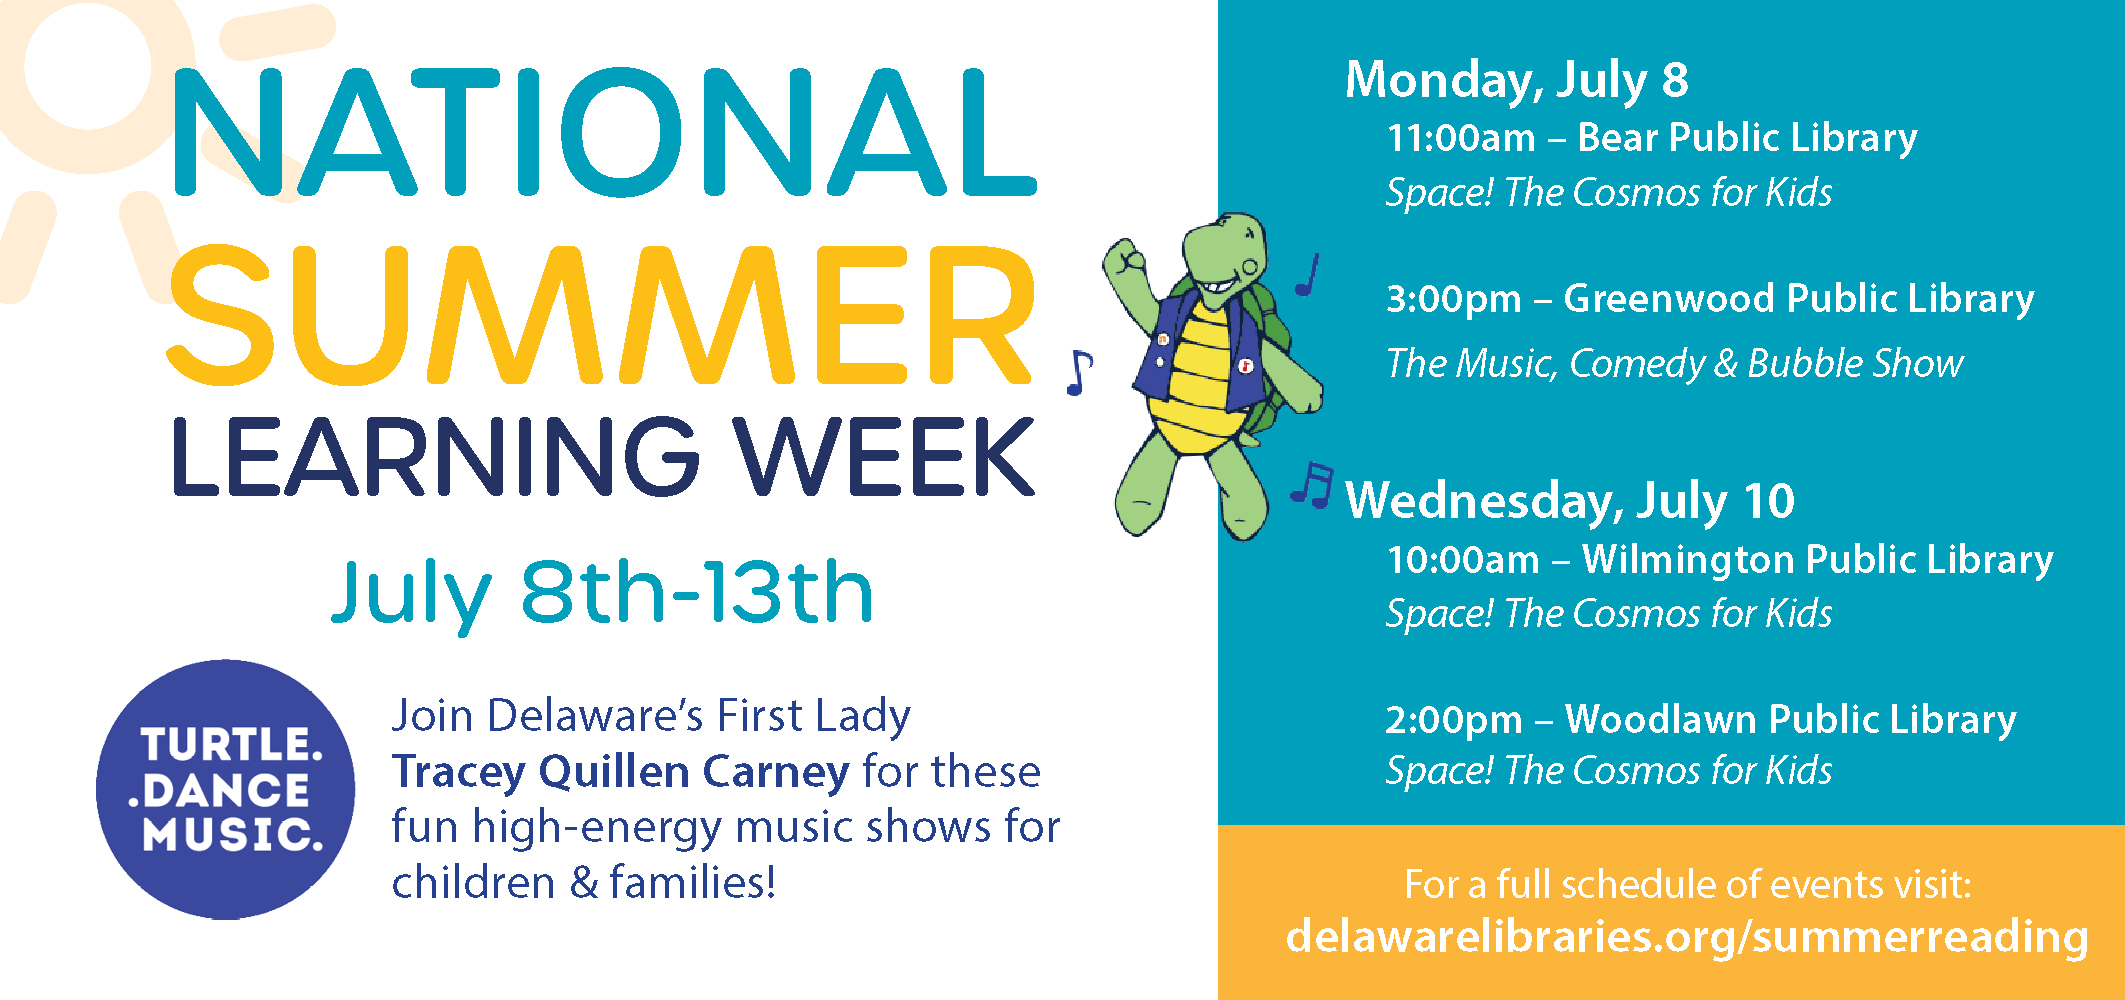 Delaware Celebrating National Summer Learning Week (July 8